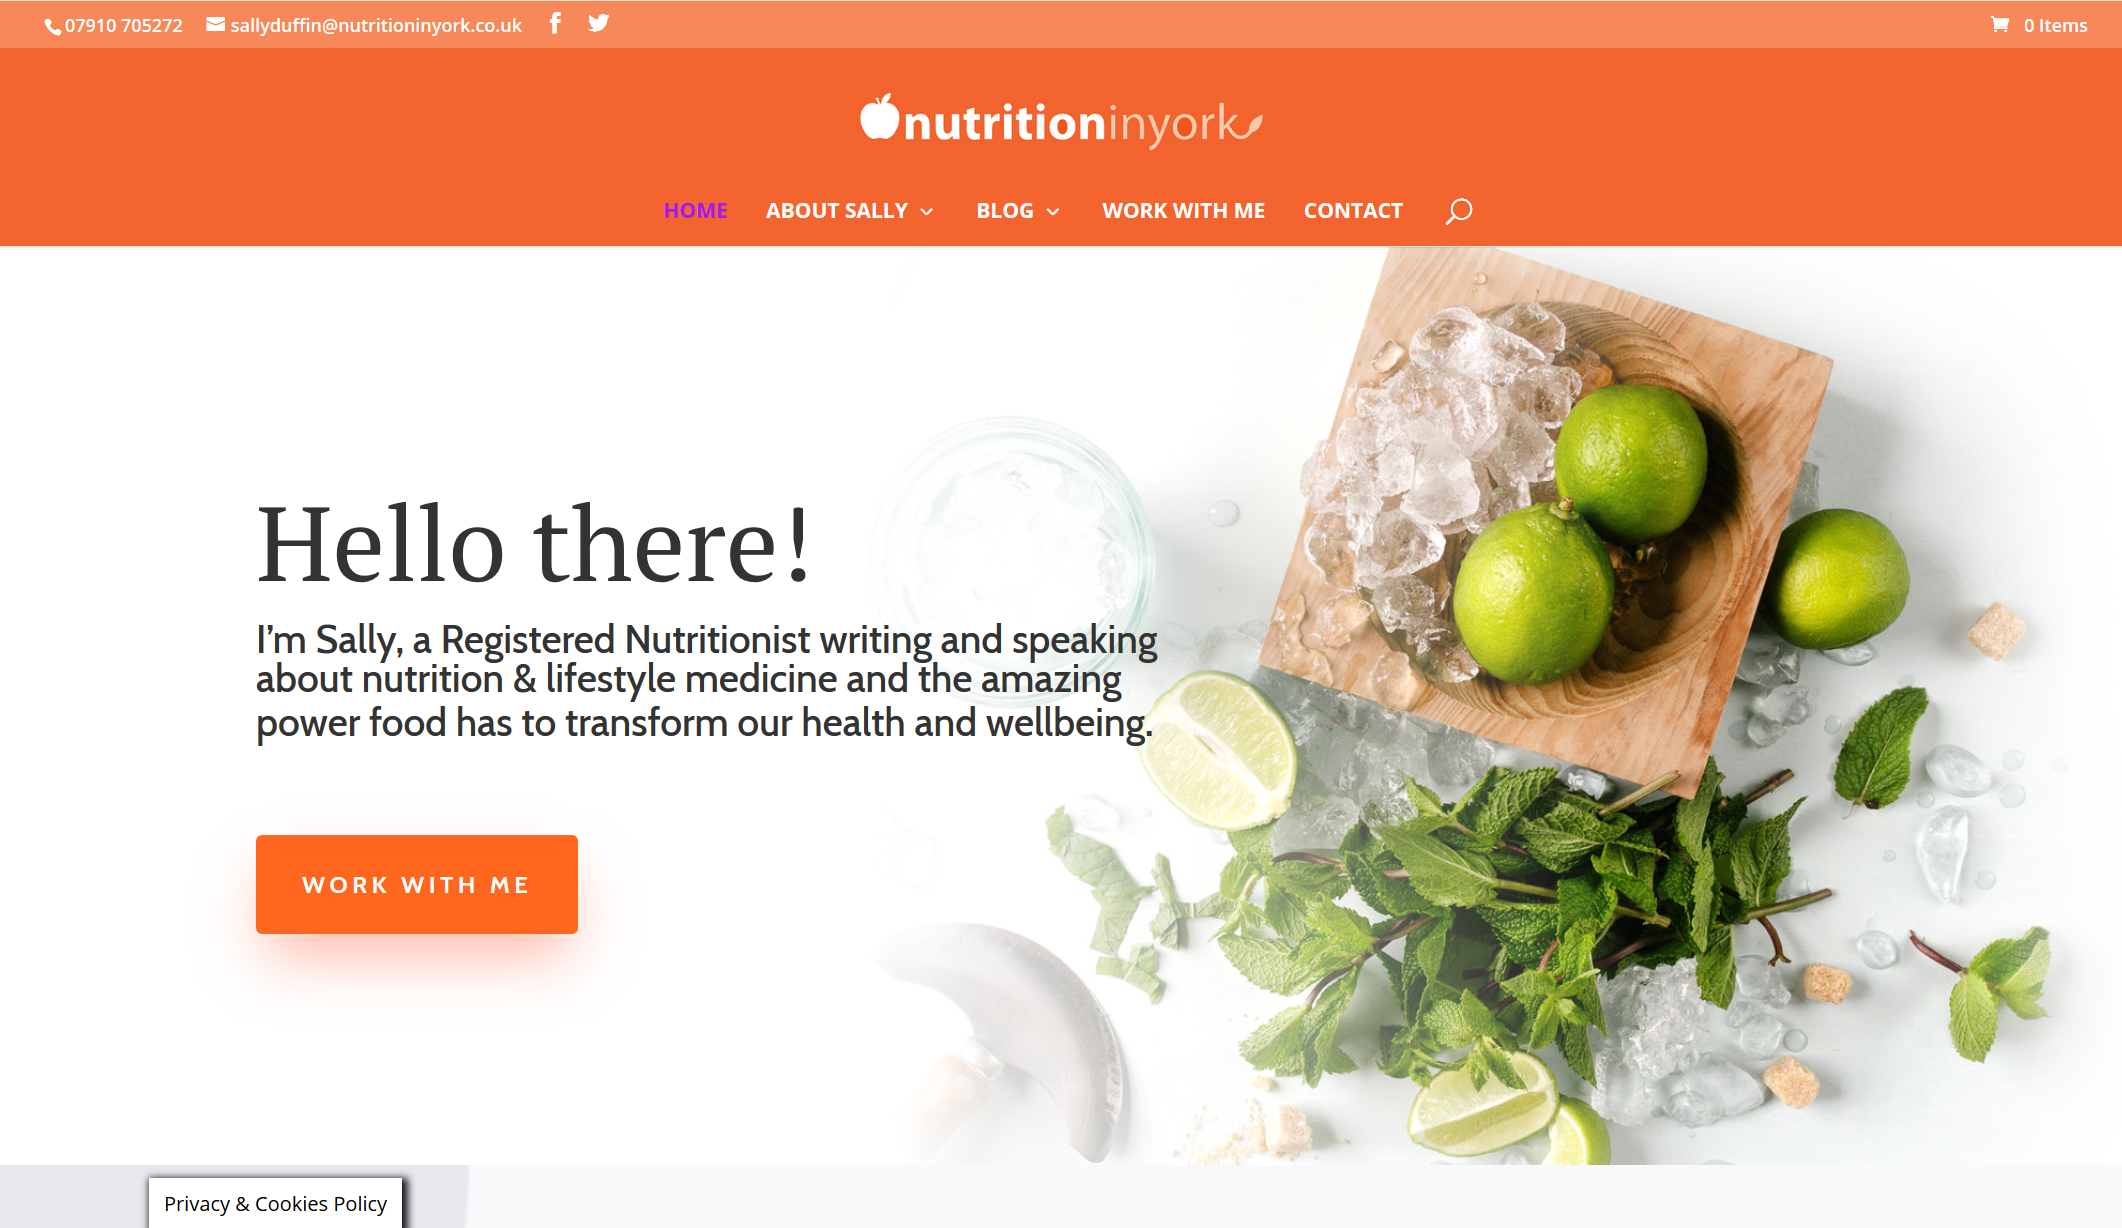 Website Refresh – www.nutritioninyork.co.uk